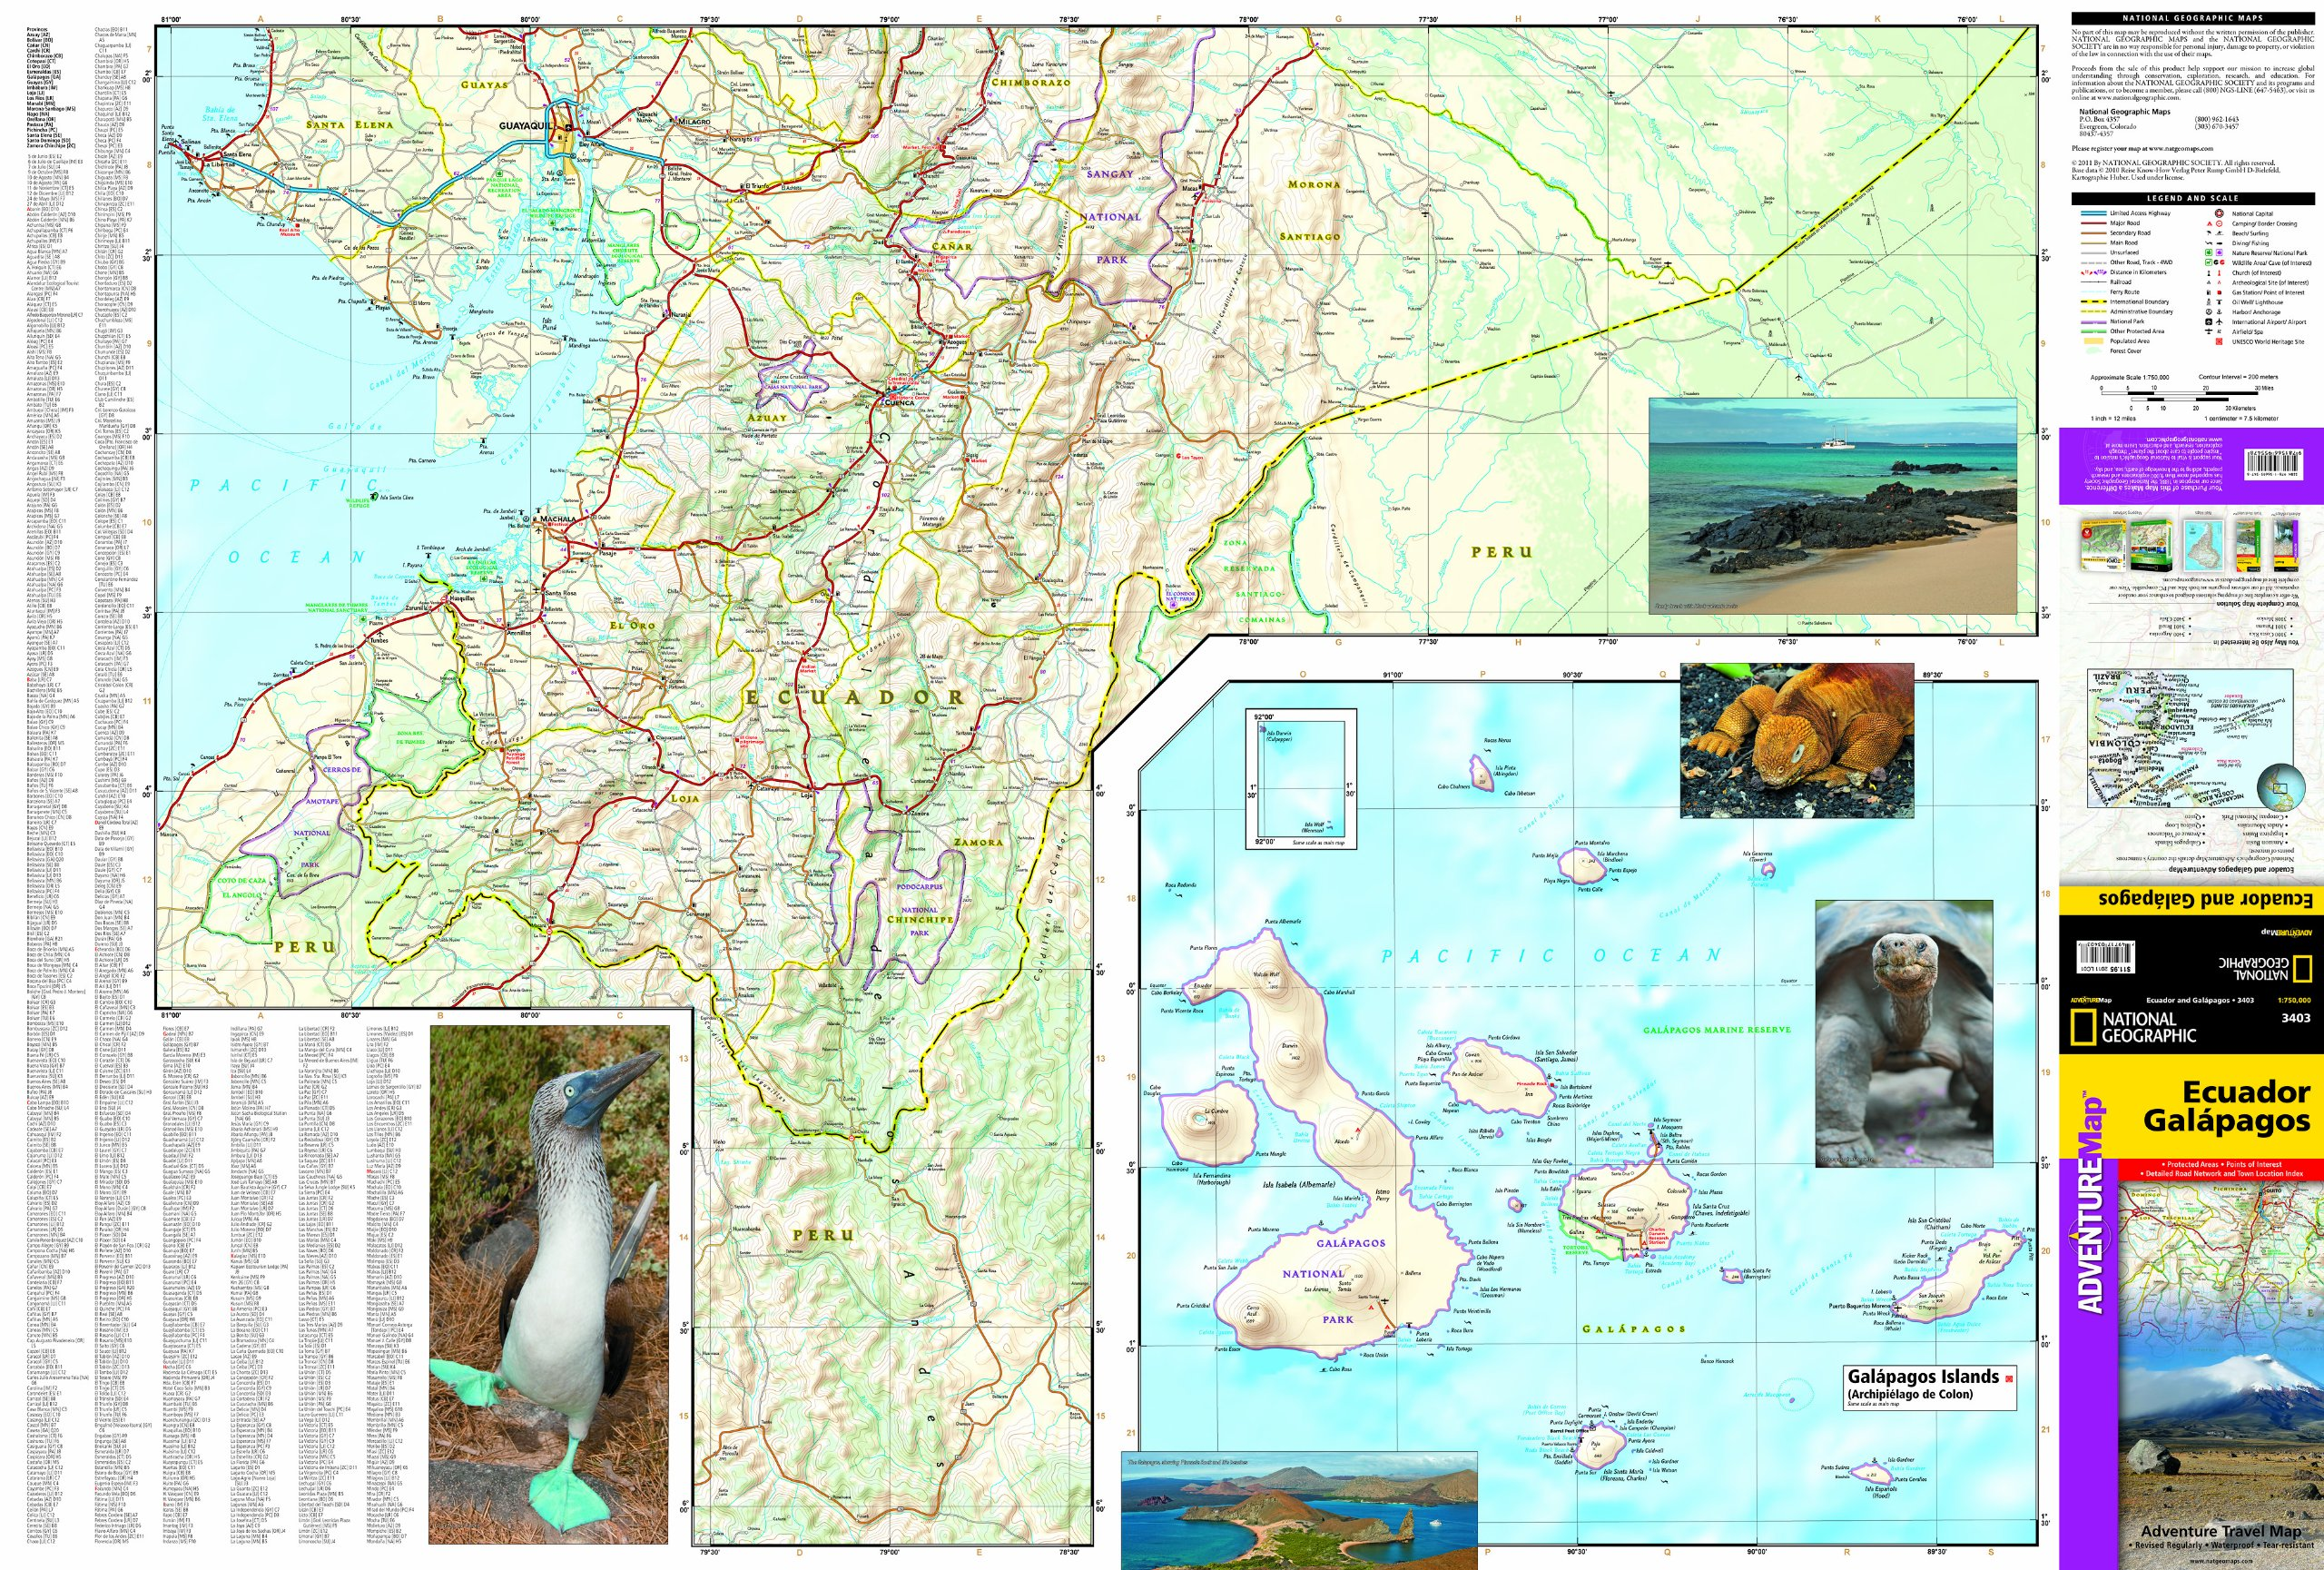 Ecuador and Galapagos Islands National Geographic Adventure Map